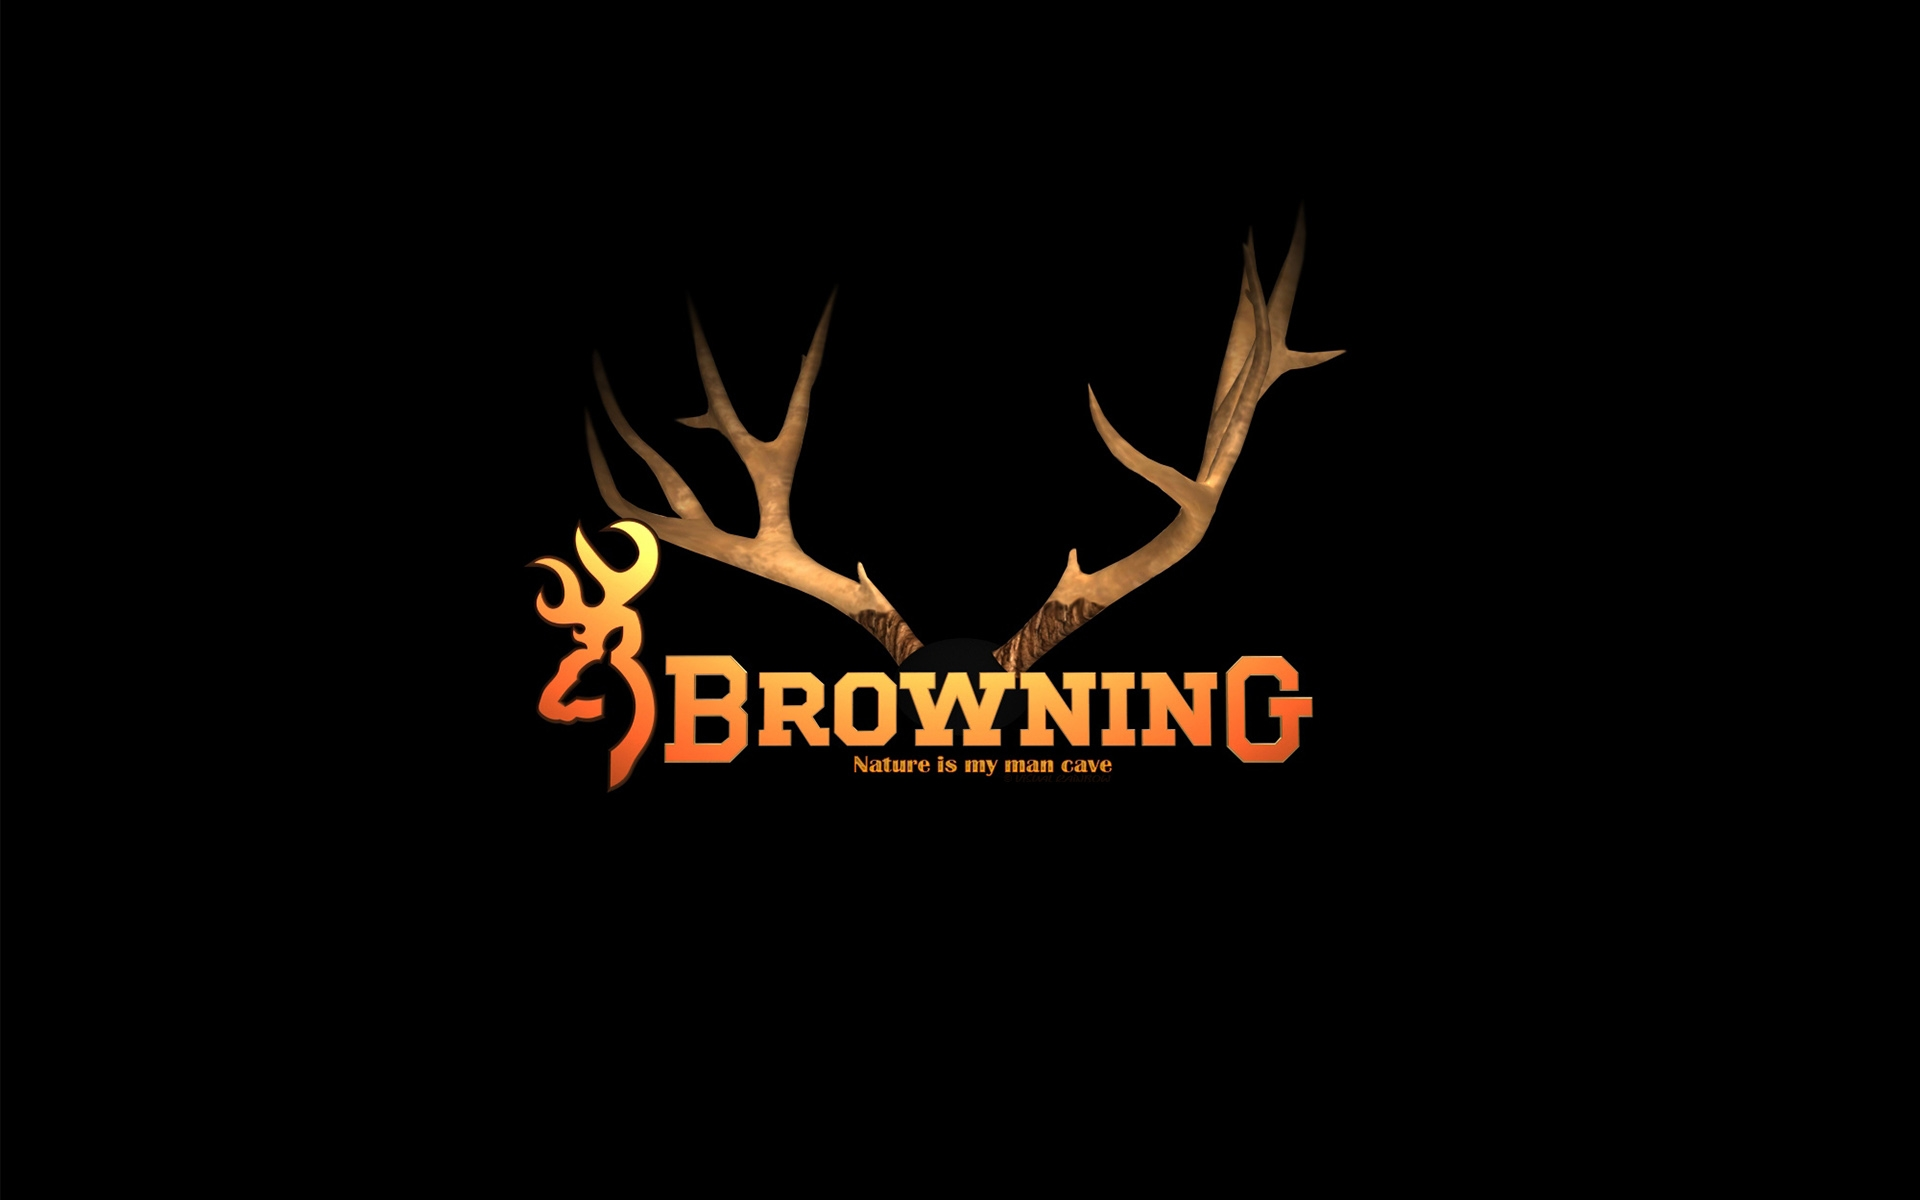 Browning Logo Backgrounds For Iphone Wallpaper browning logo 1920x1200